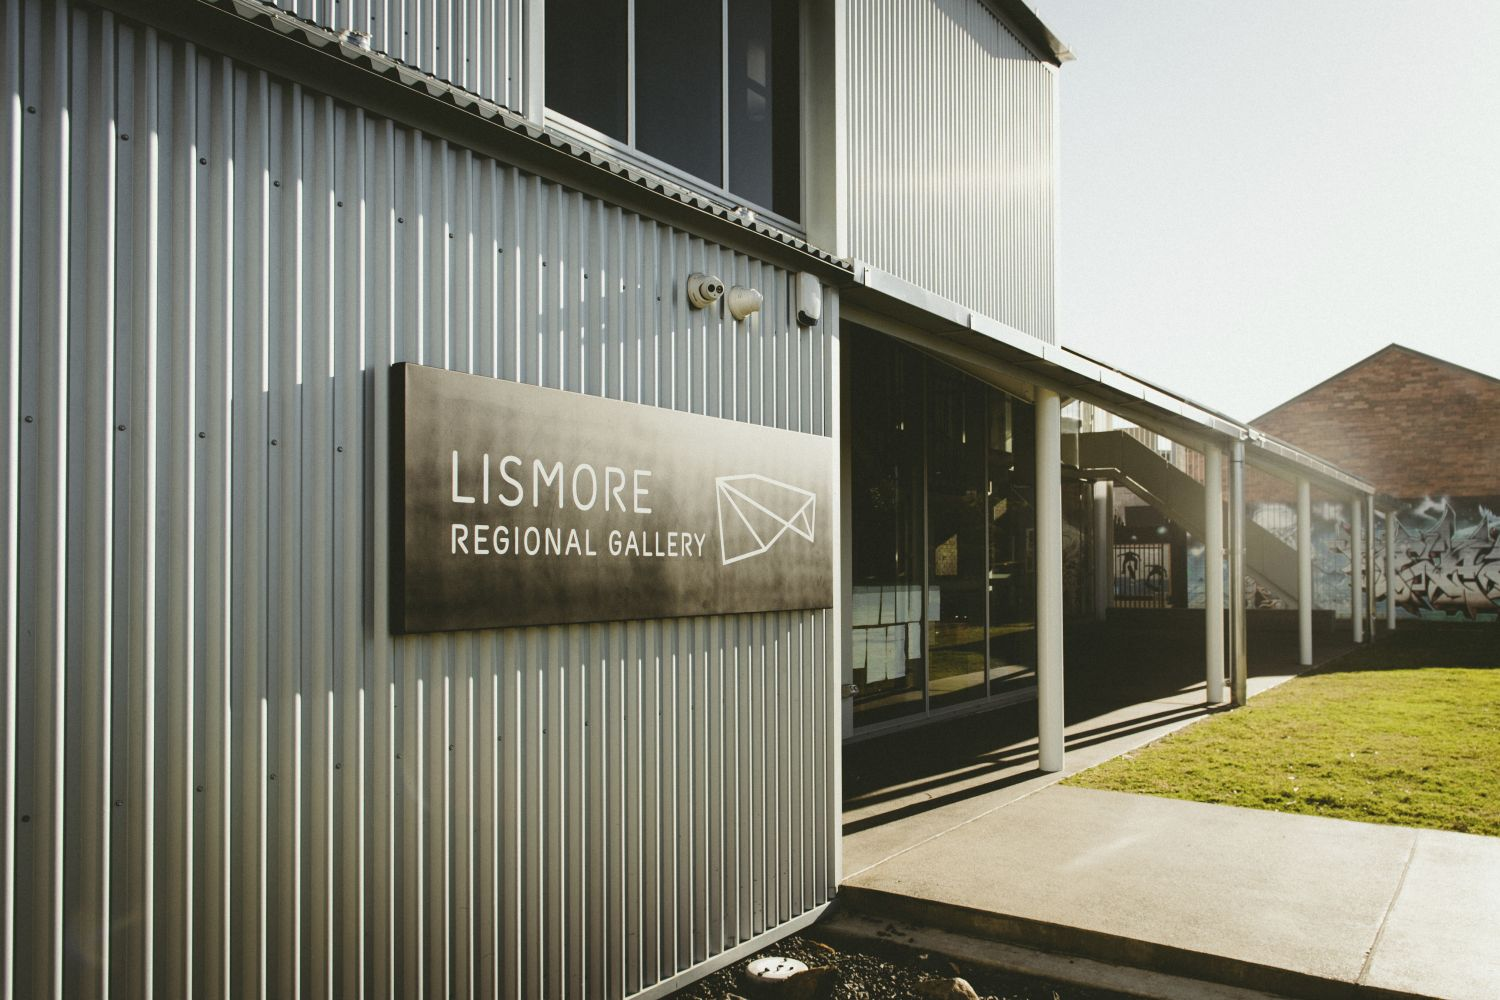 Entrance to Lismore Regional Gallery, Lismore